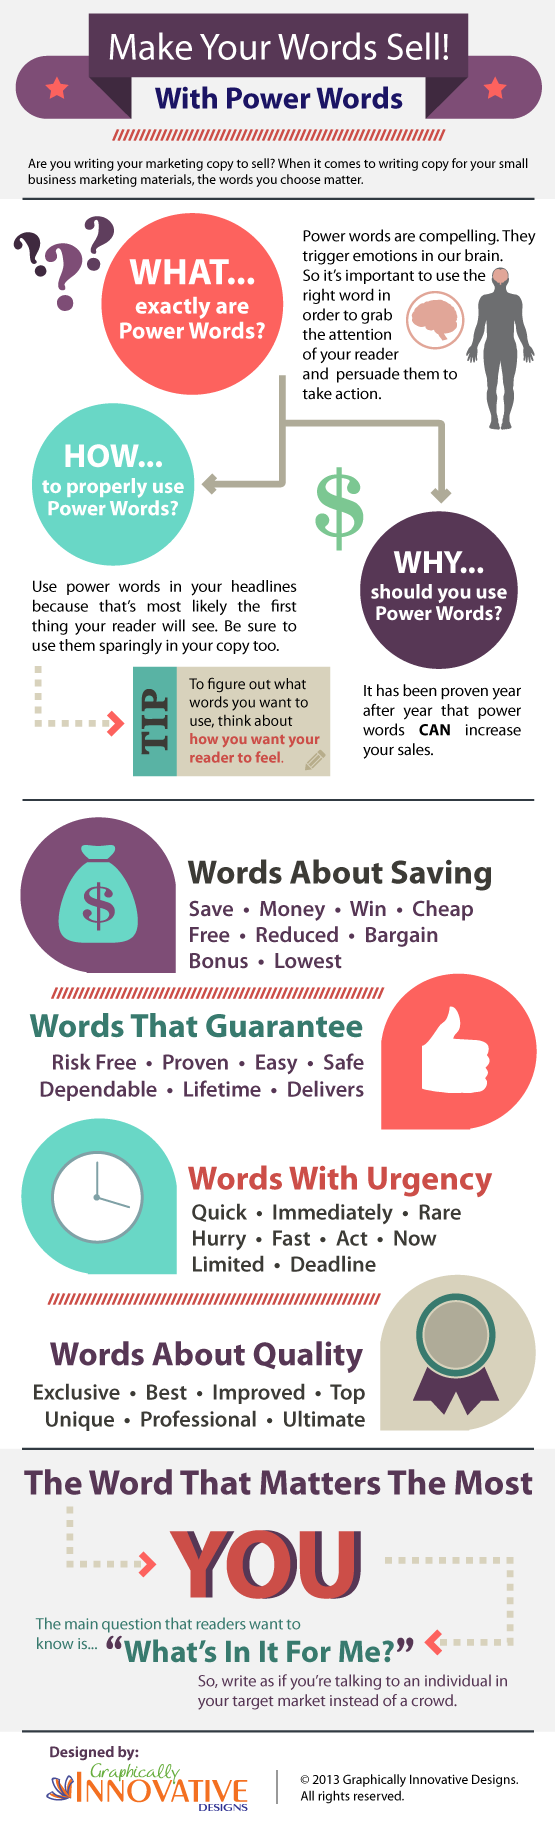 Making Your Words Sell with Power Words Infographic